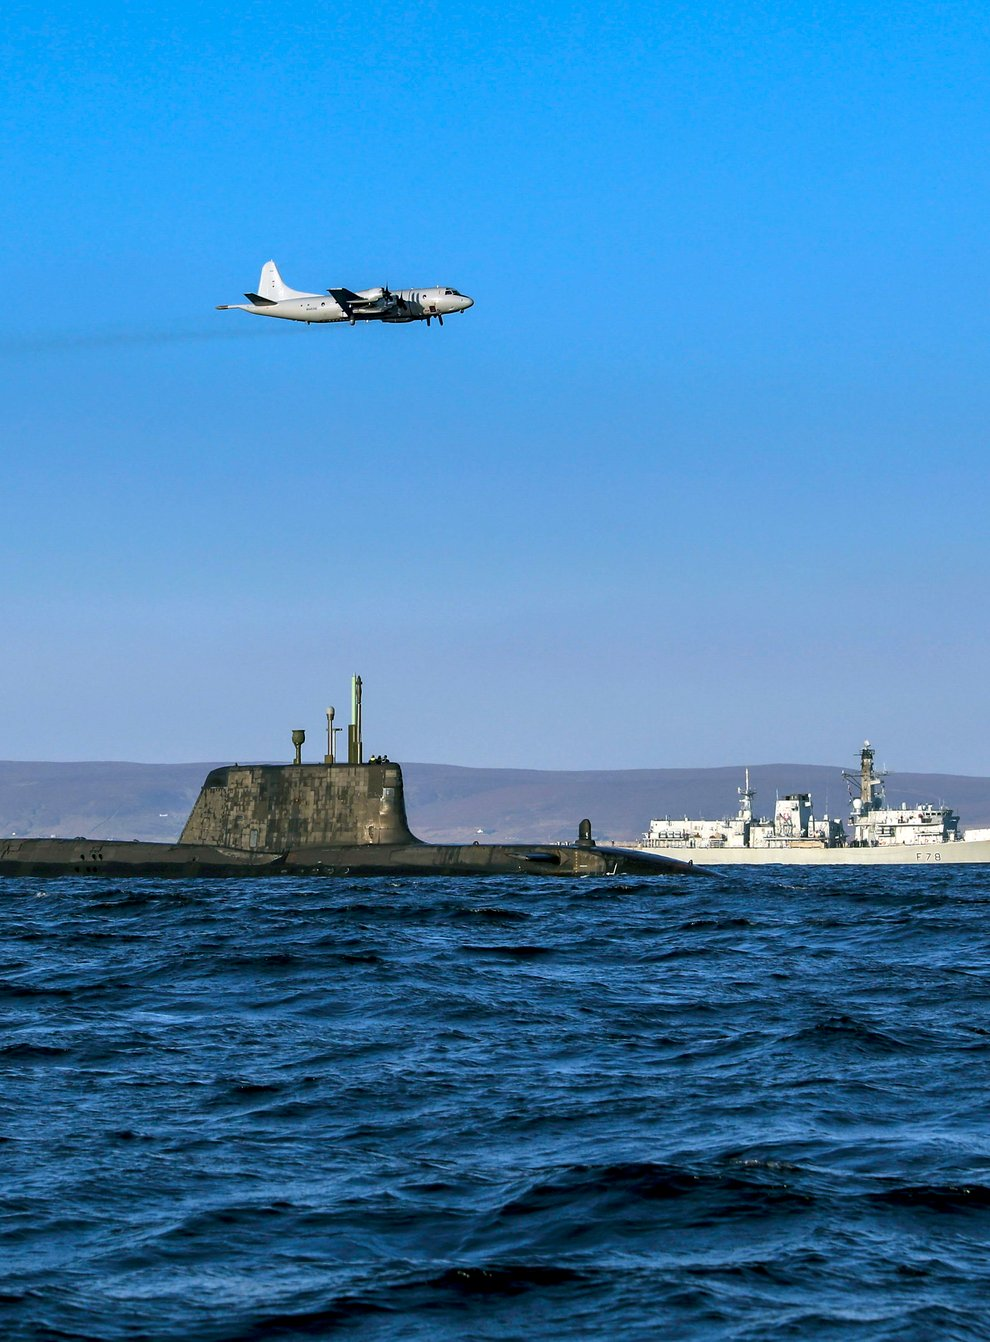 Military vessels and aircraft